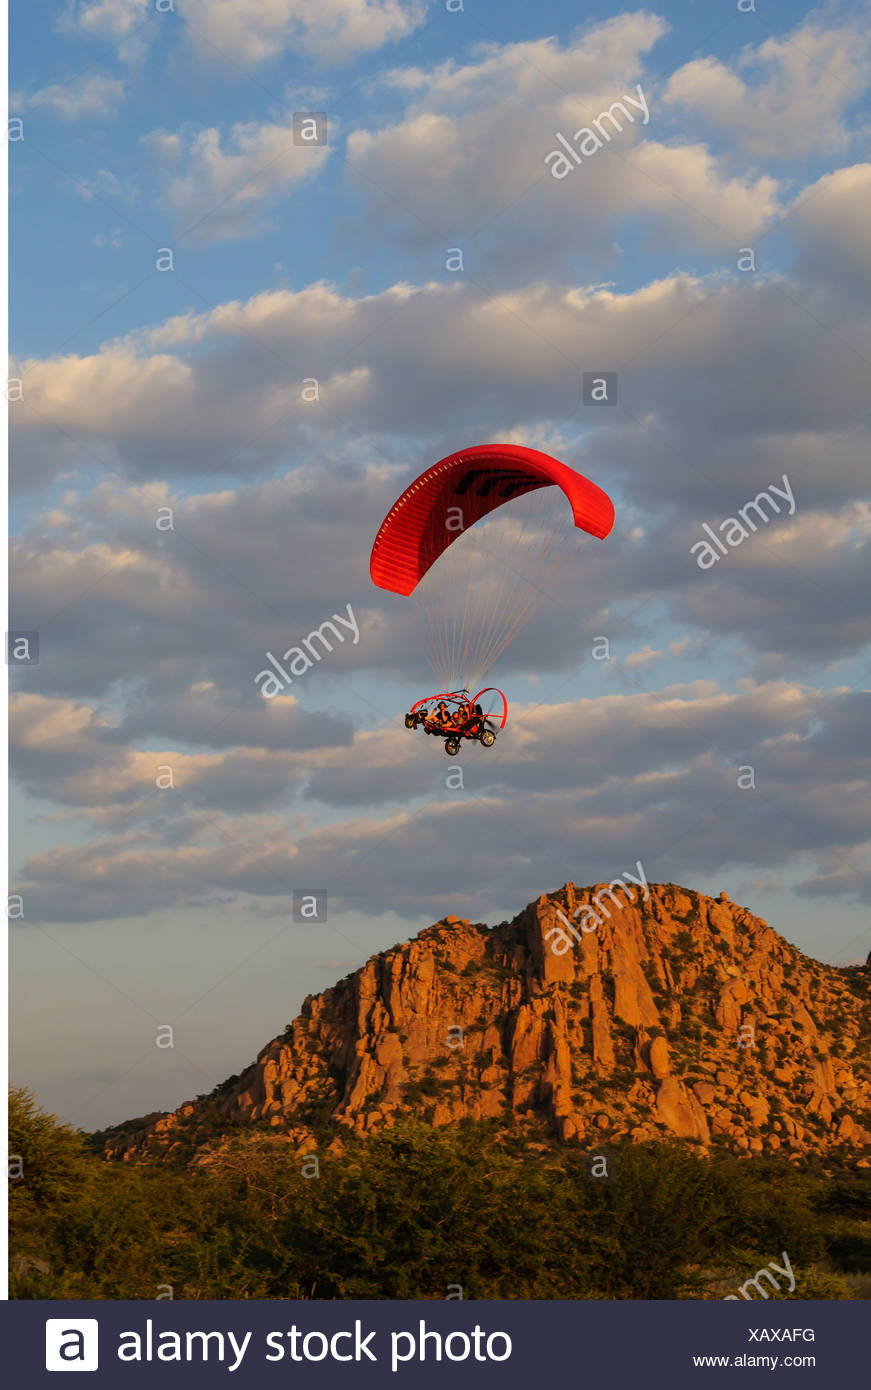 sports paragliding paraglider Xcitor 2009 motor-driven paraglide Erongo Namibia Southern Africa mounts mount flying flight - Stock Image